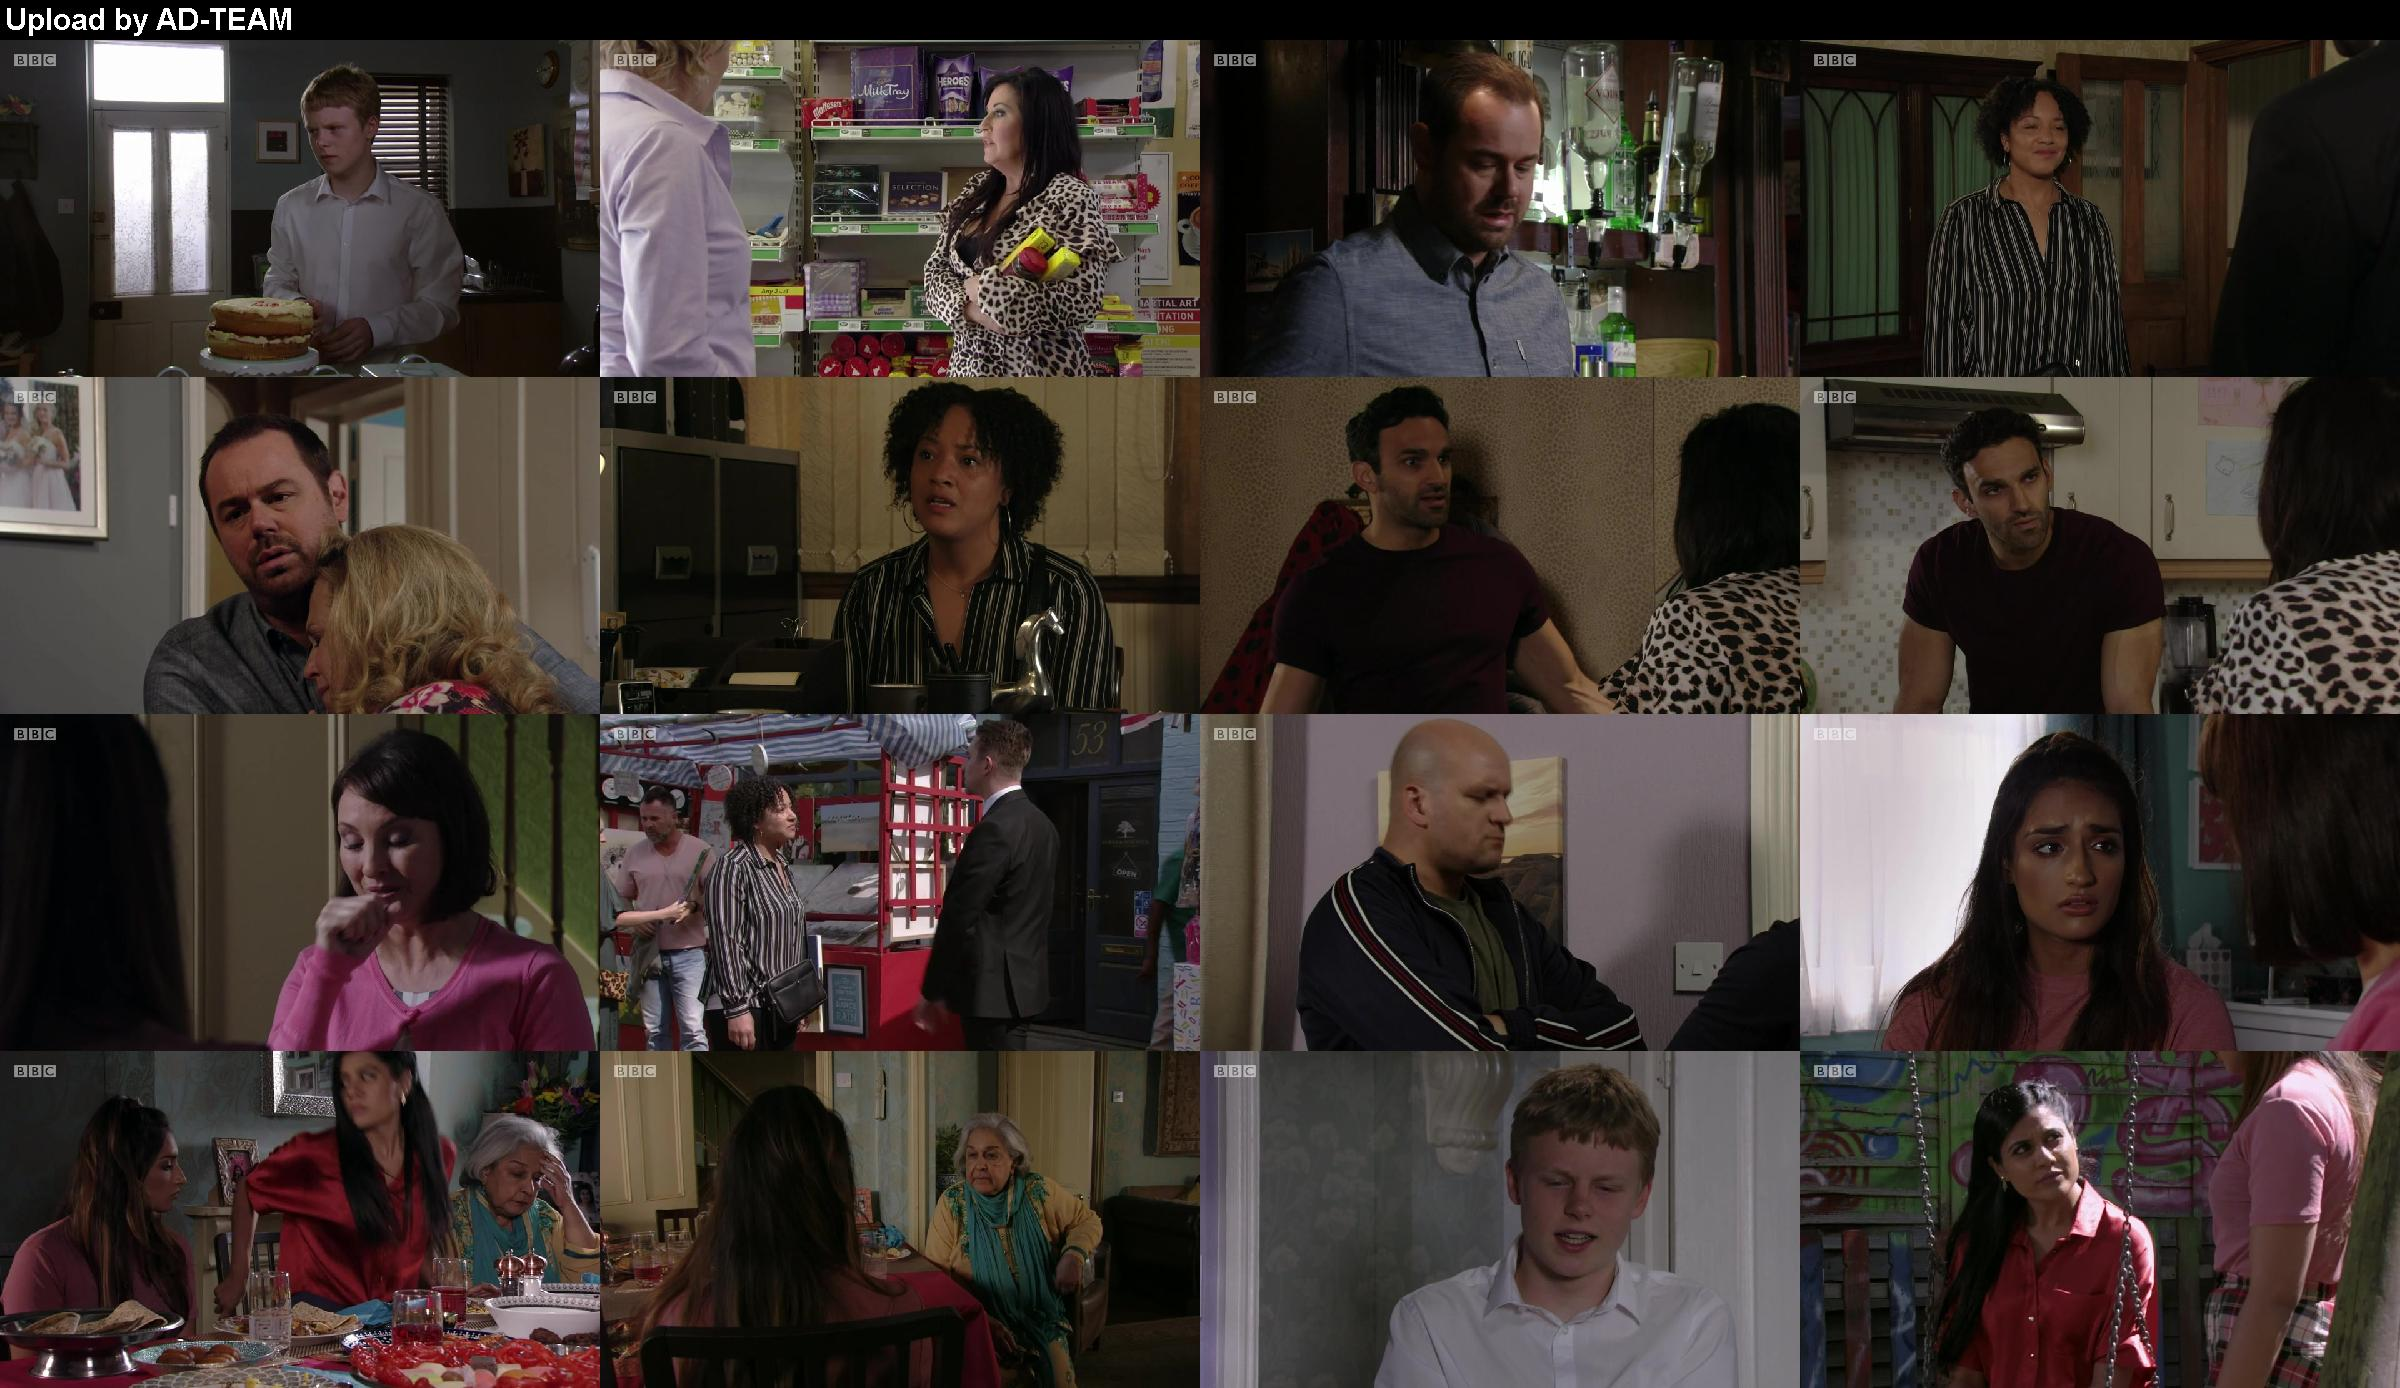 Eastenders (2019) 08 12 Web H264-illuminate